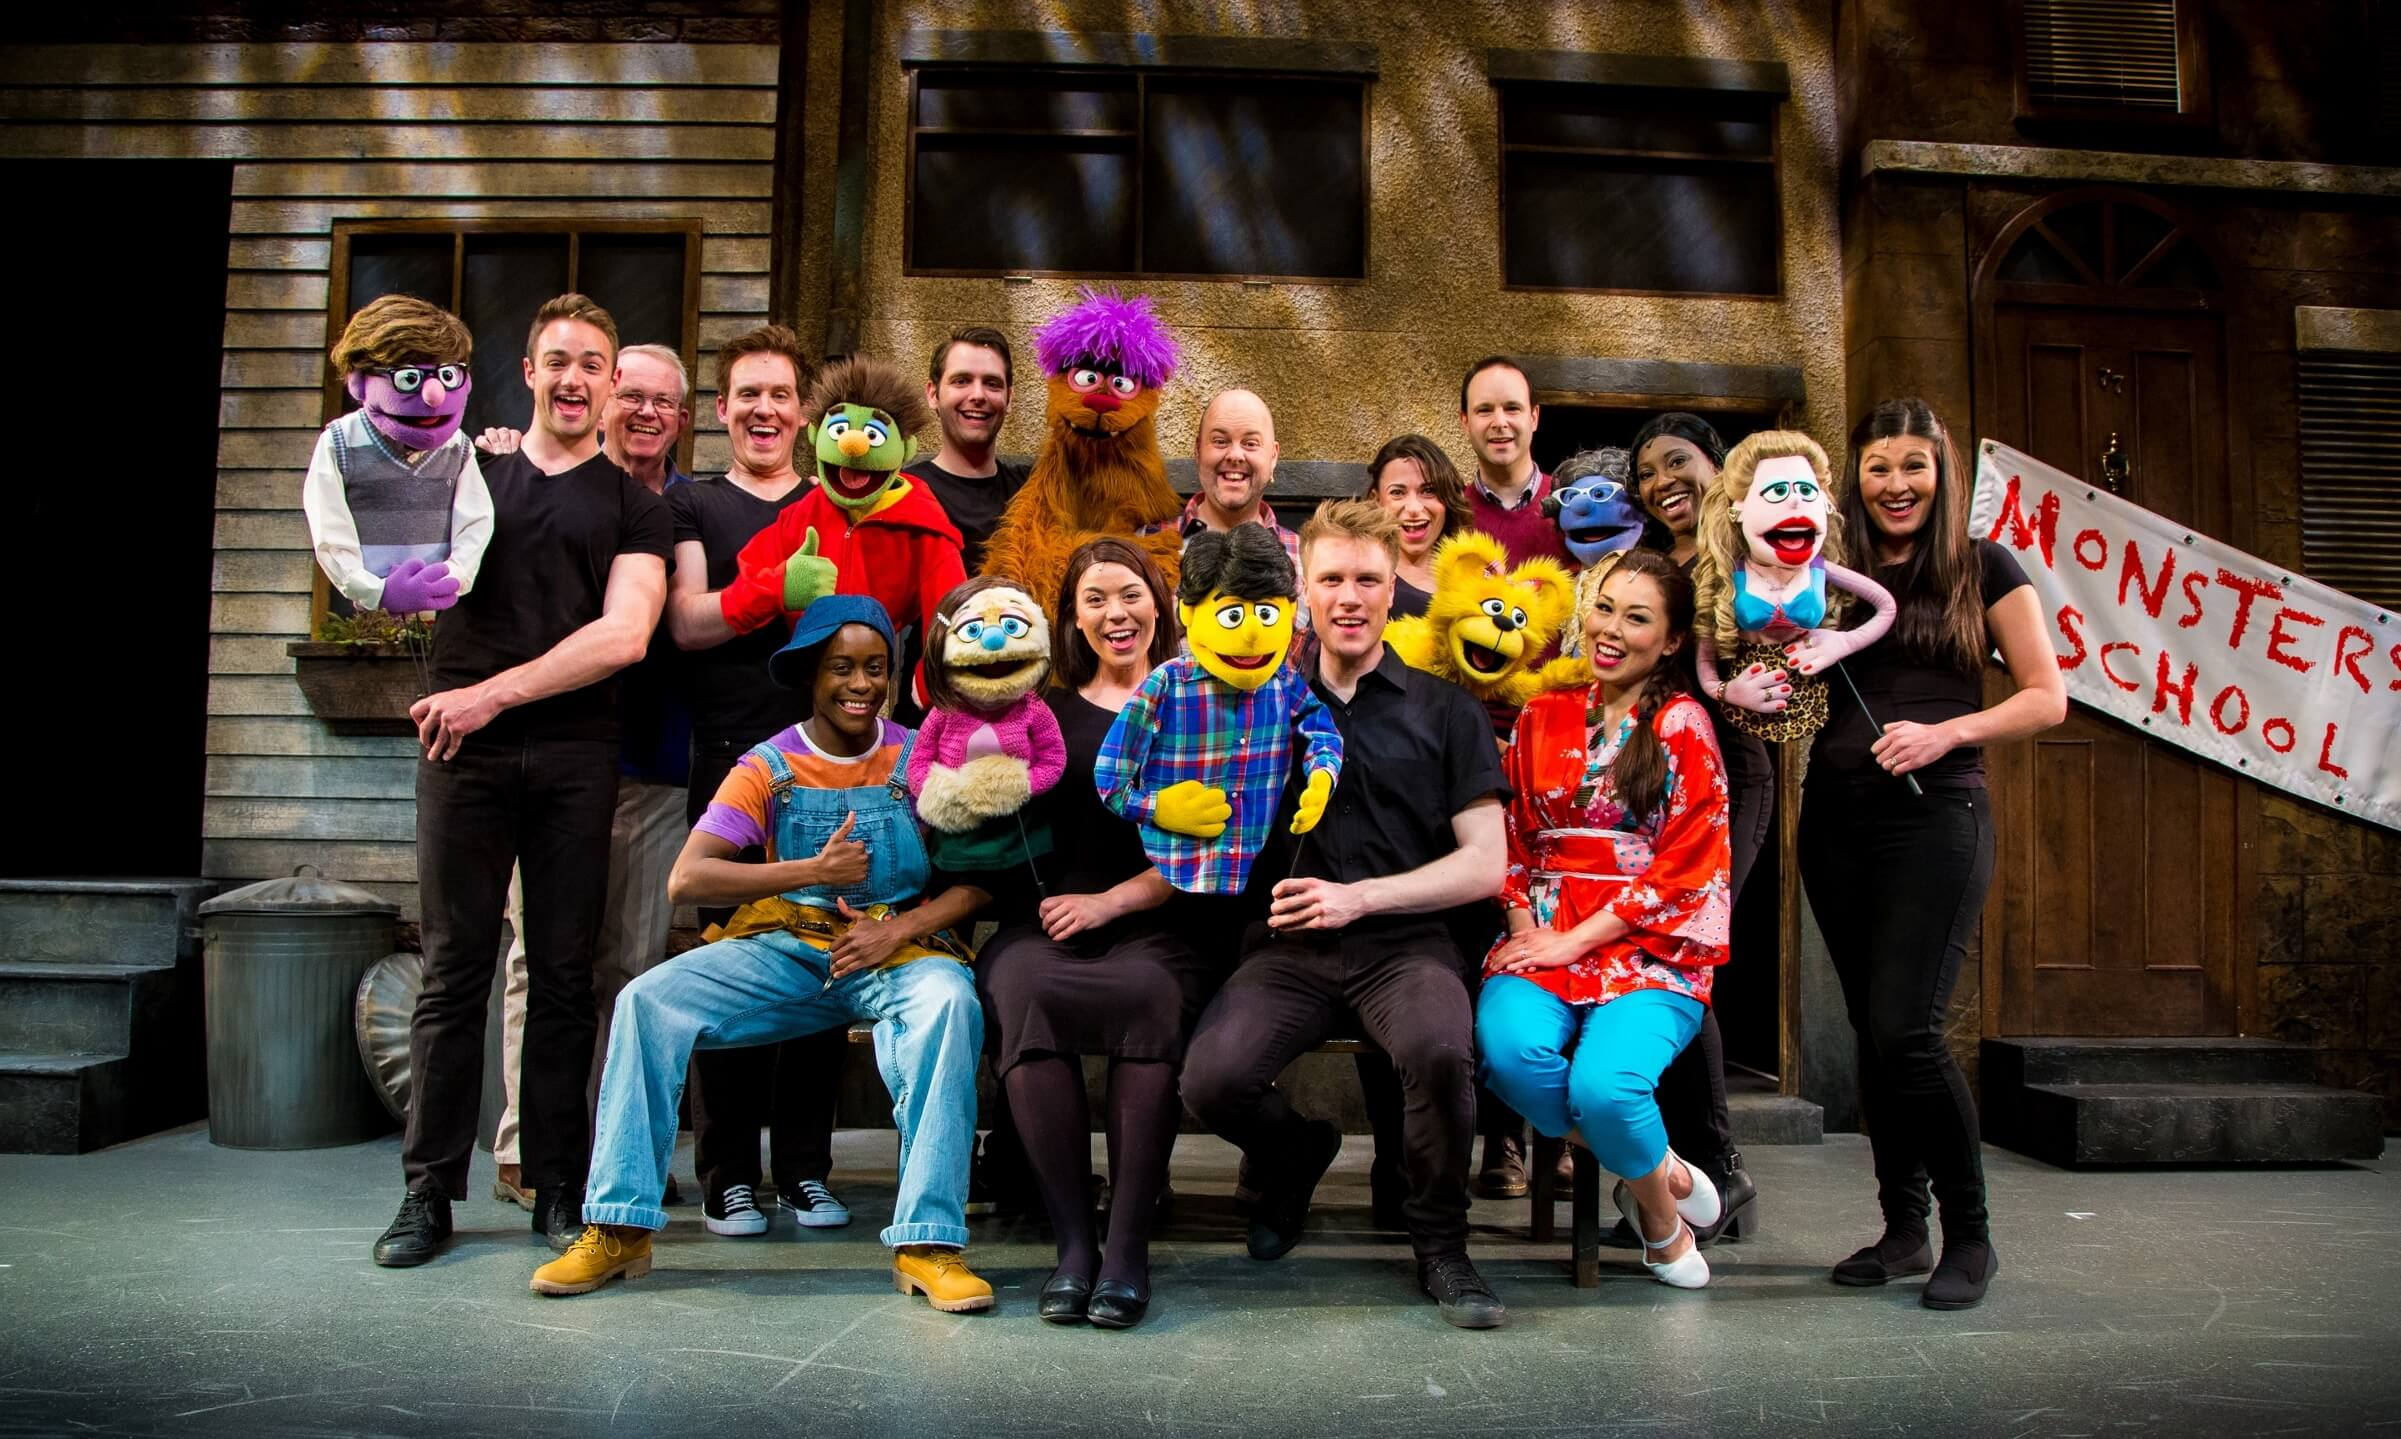 Broadway & West End Musical Avenue Q Is Heading To Blackpool